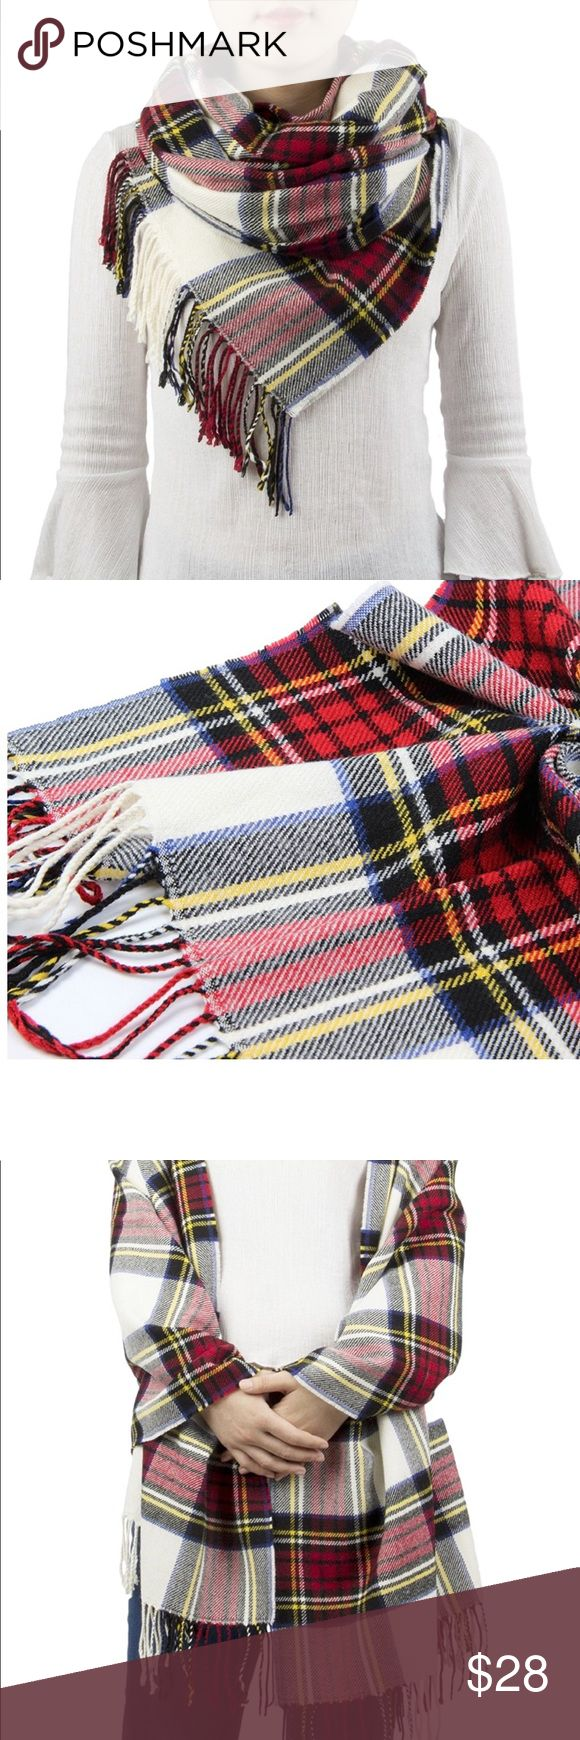 Classic Red and White Tartan Plaid Blanket Scarf Soft, luxurious, and on trend for fall, this cozy blanket scarf can be draped multiple ways to keep you protected from the cold and great.  Winter is coming, gals! Lalea Accessories Scarves & Wraps